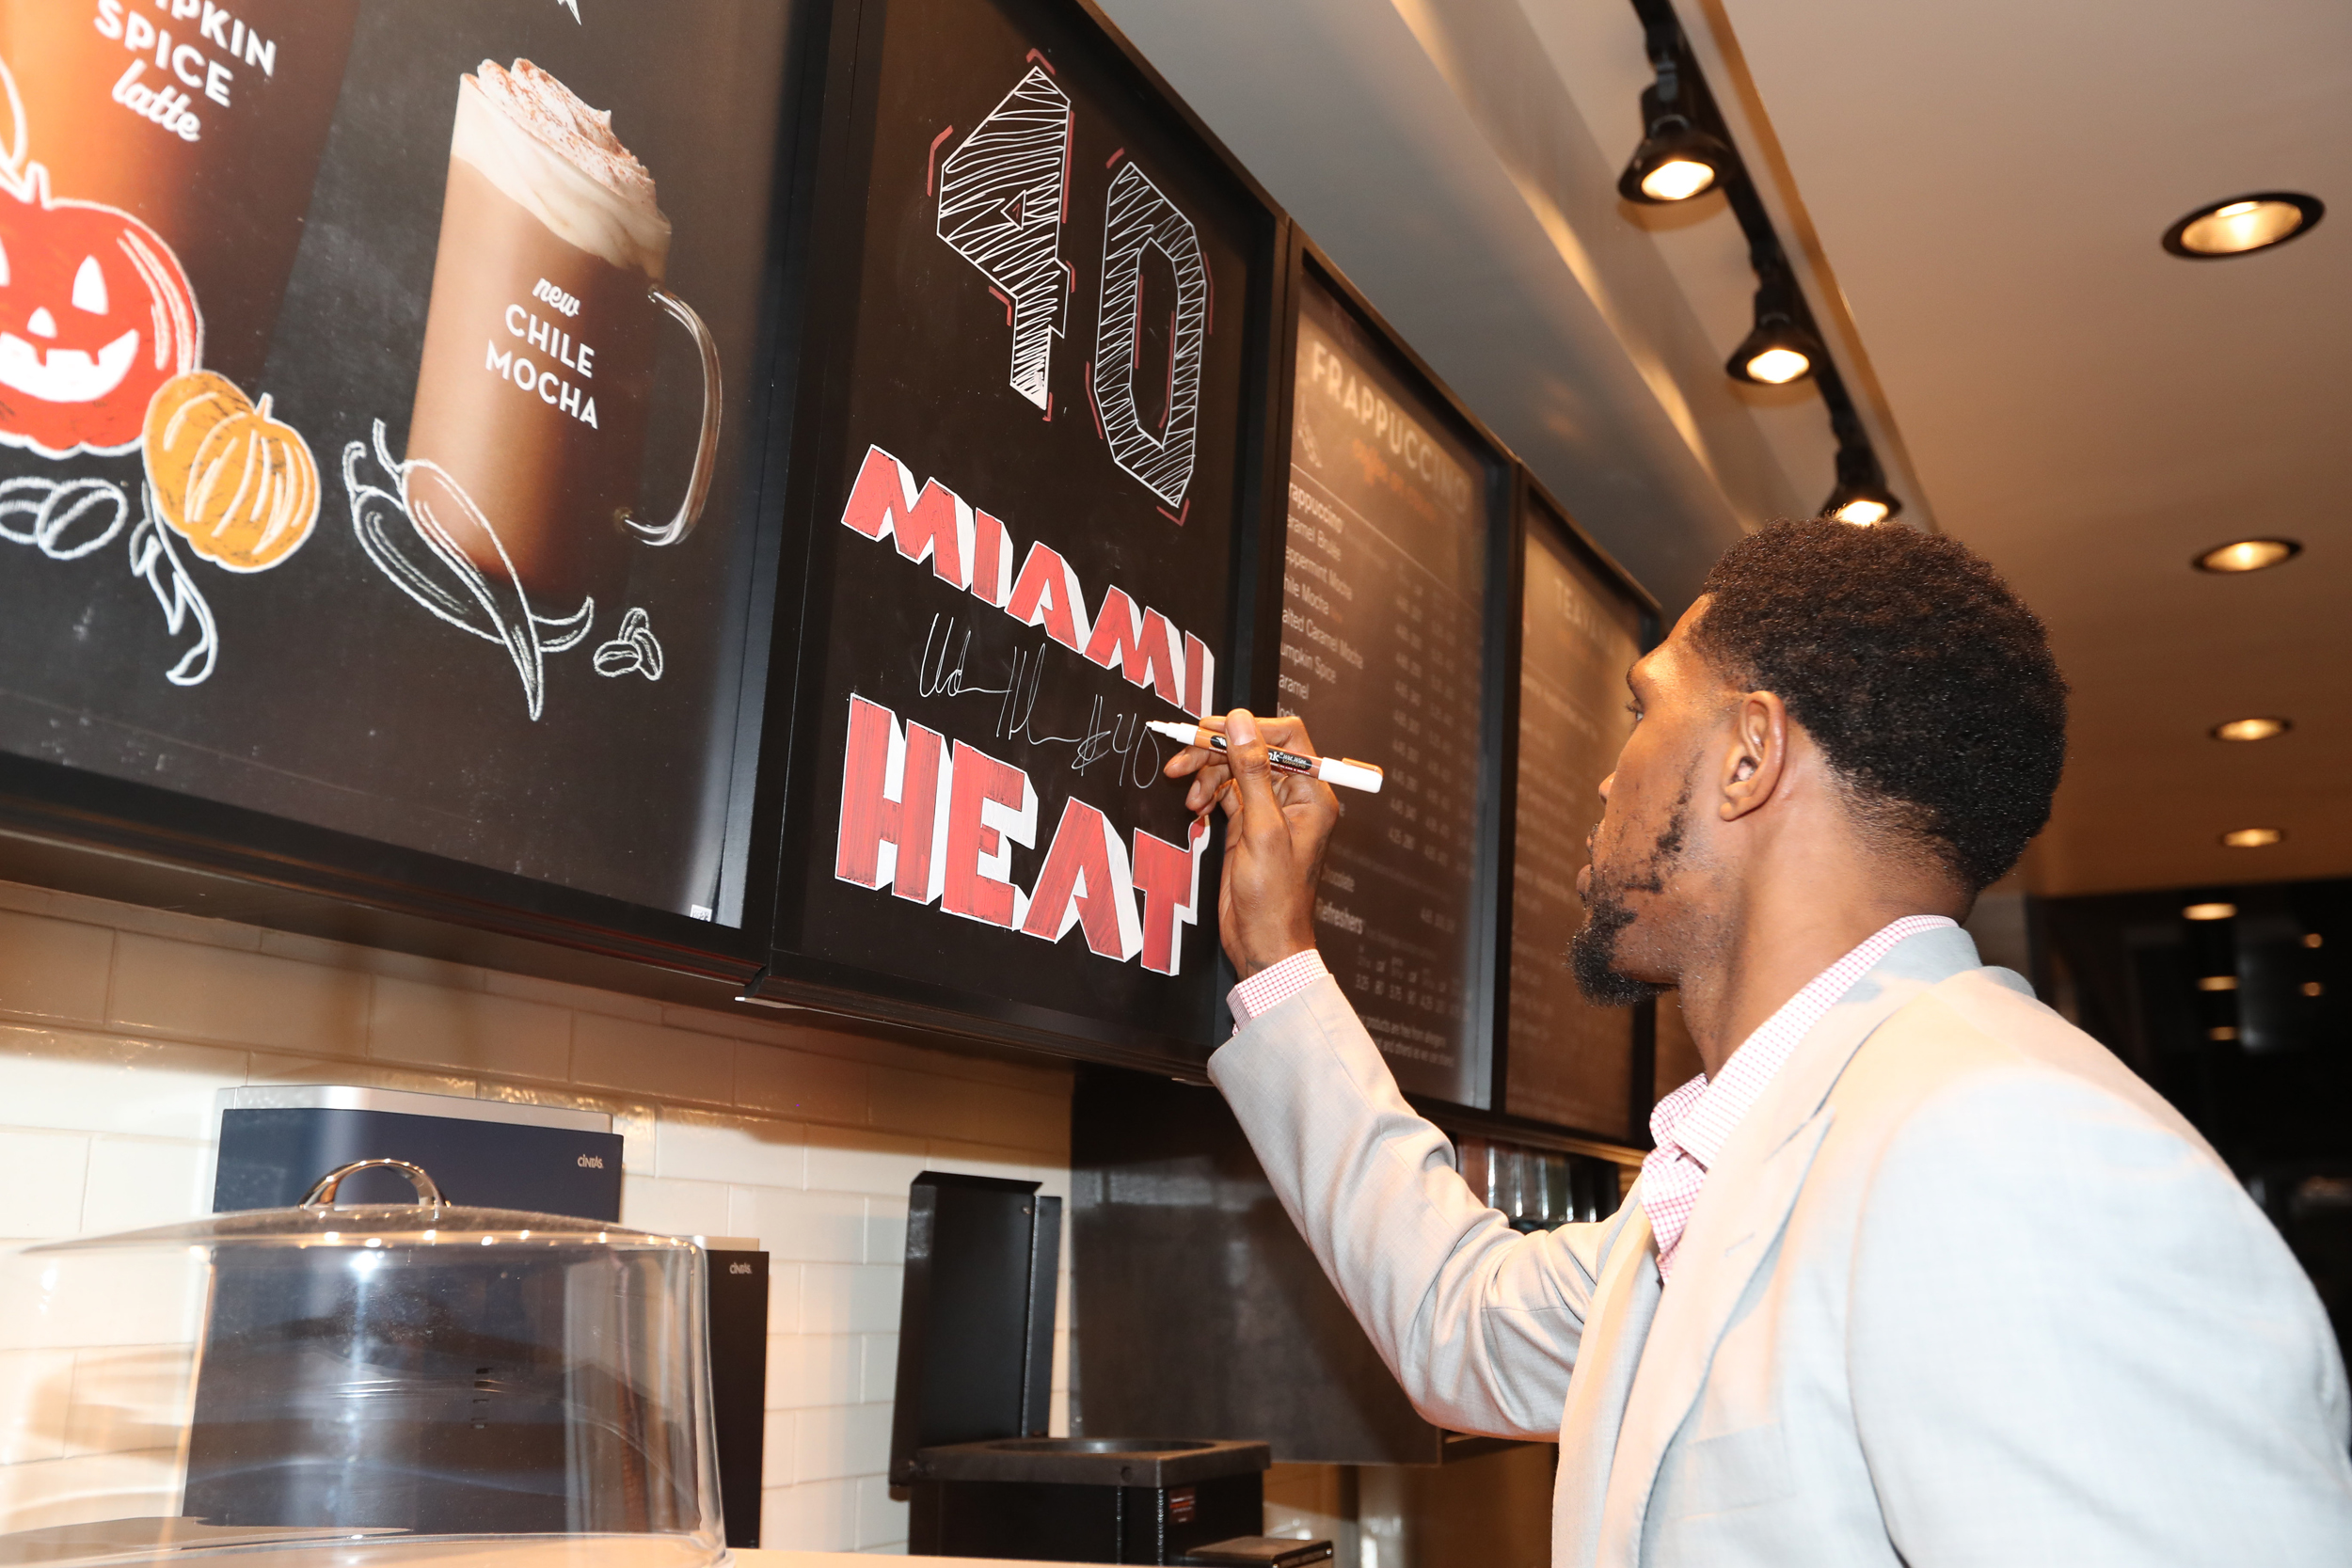 Miami Heat's Udonis Haslem signs autograph on the wall behind the Starbucks counter at the VIP preview of Starbucks hosted by Udonis Haslem and Ramona Hall at Jackson Memorial Medical Center on October 24, 2016 in Miami, FL.